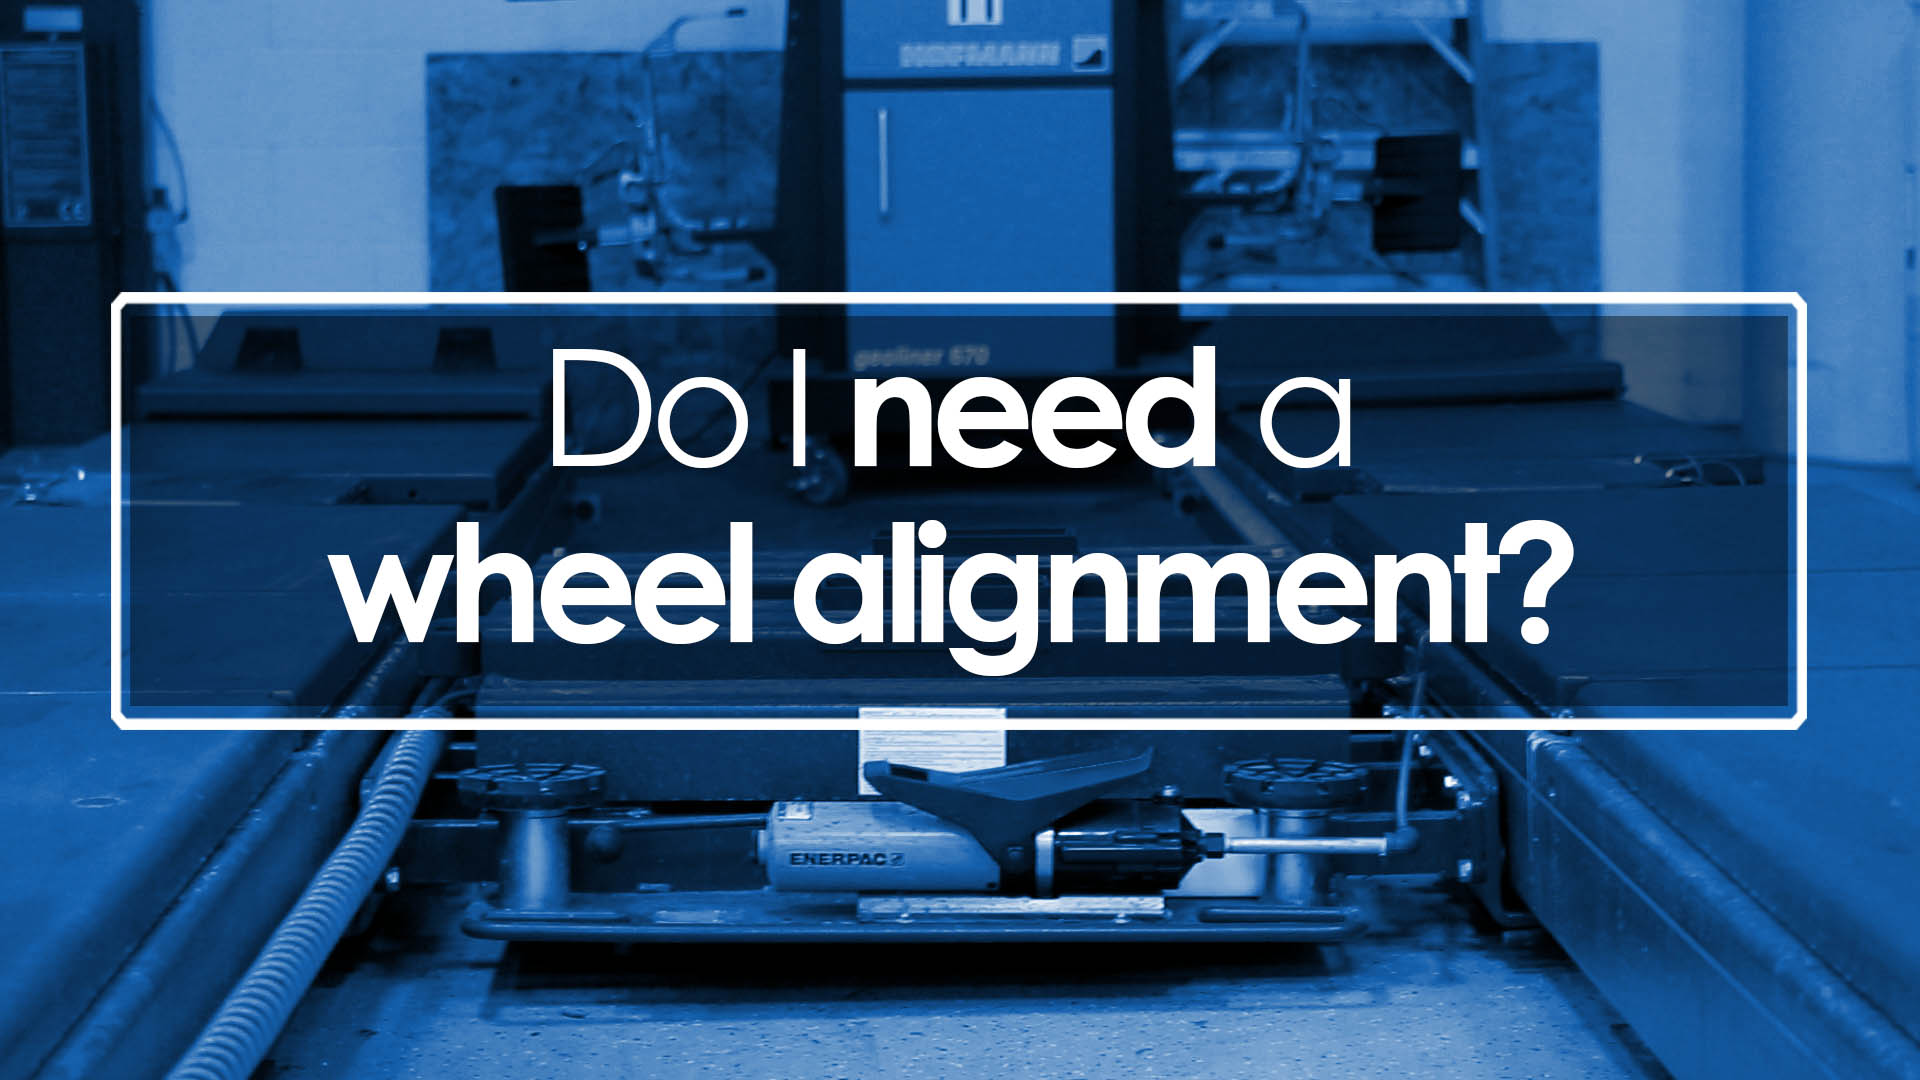 Do I need a wheel alignment